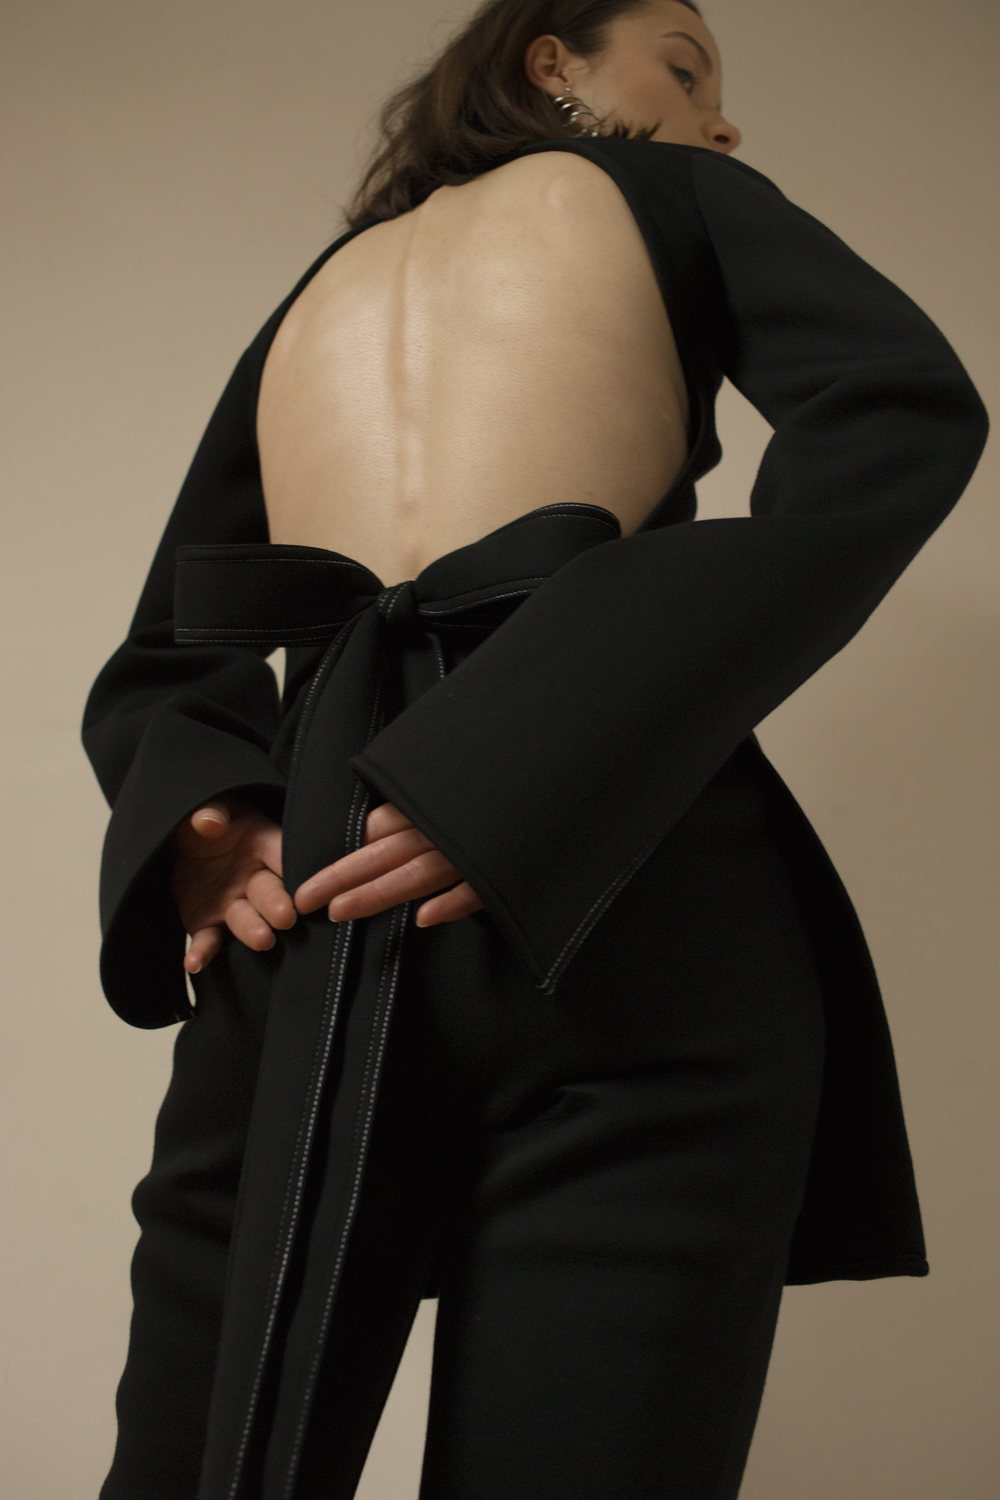 025_BeaufilleFW16_Ph_SarahBlais.jpg